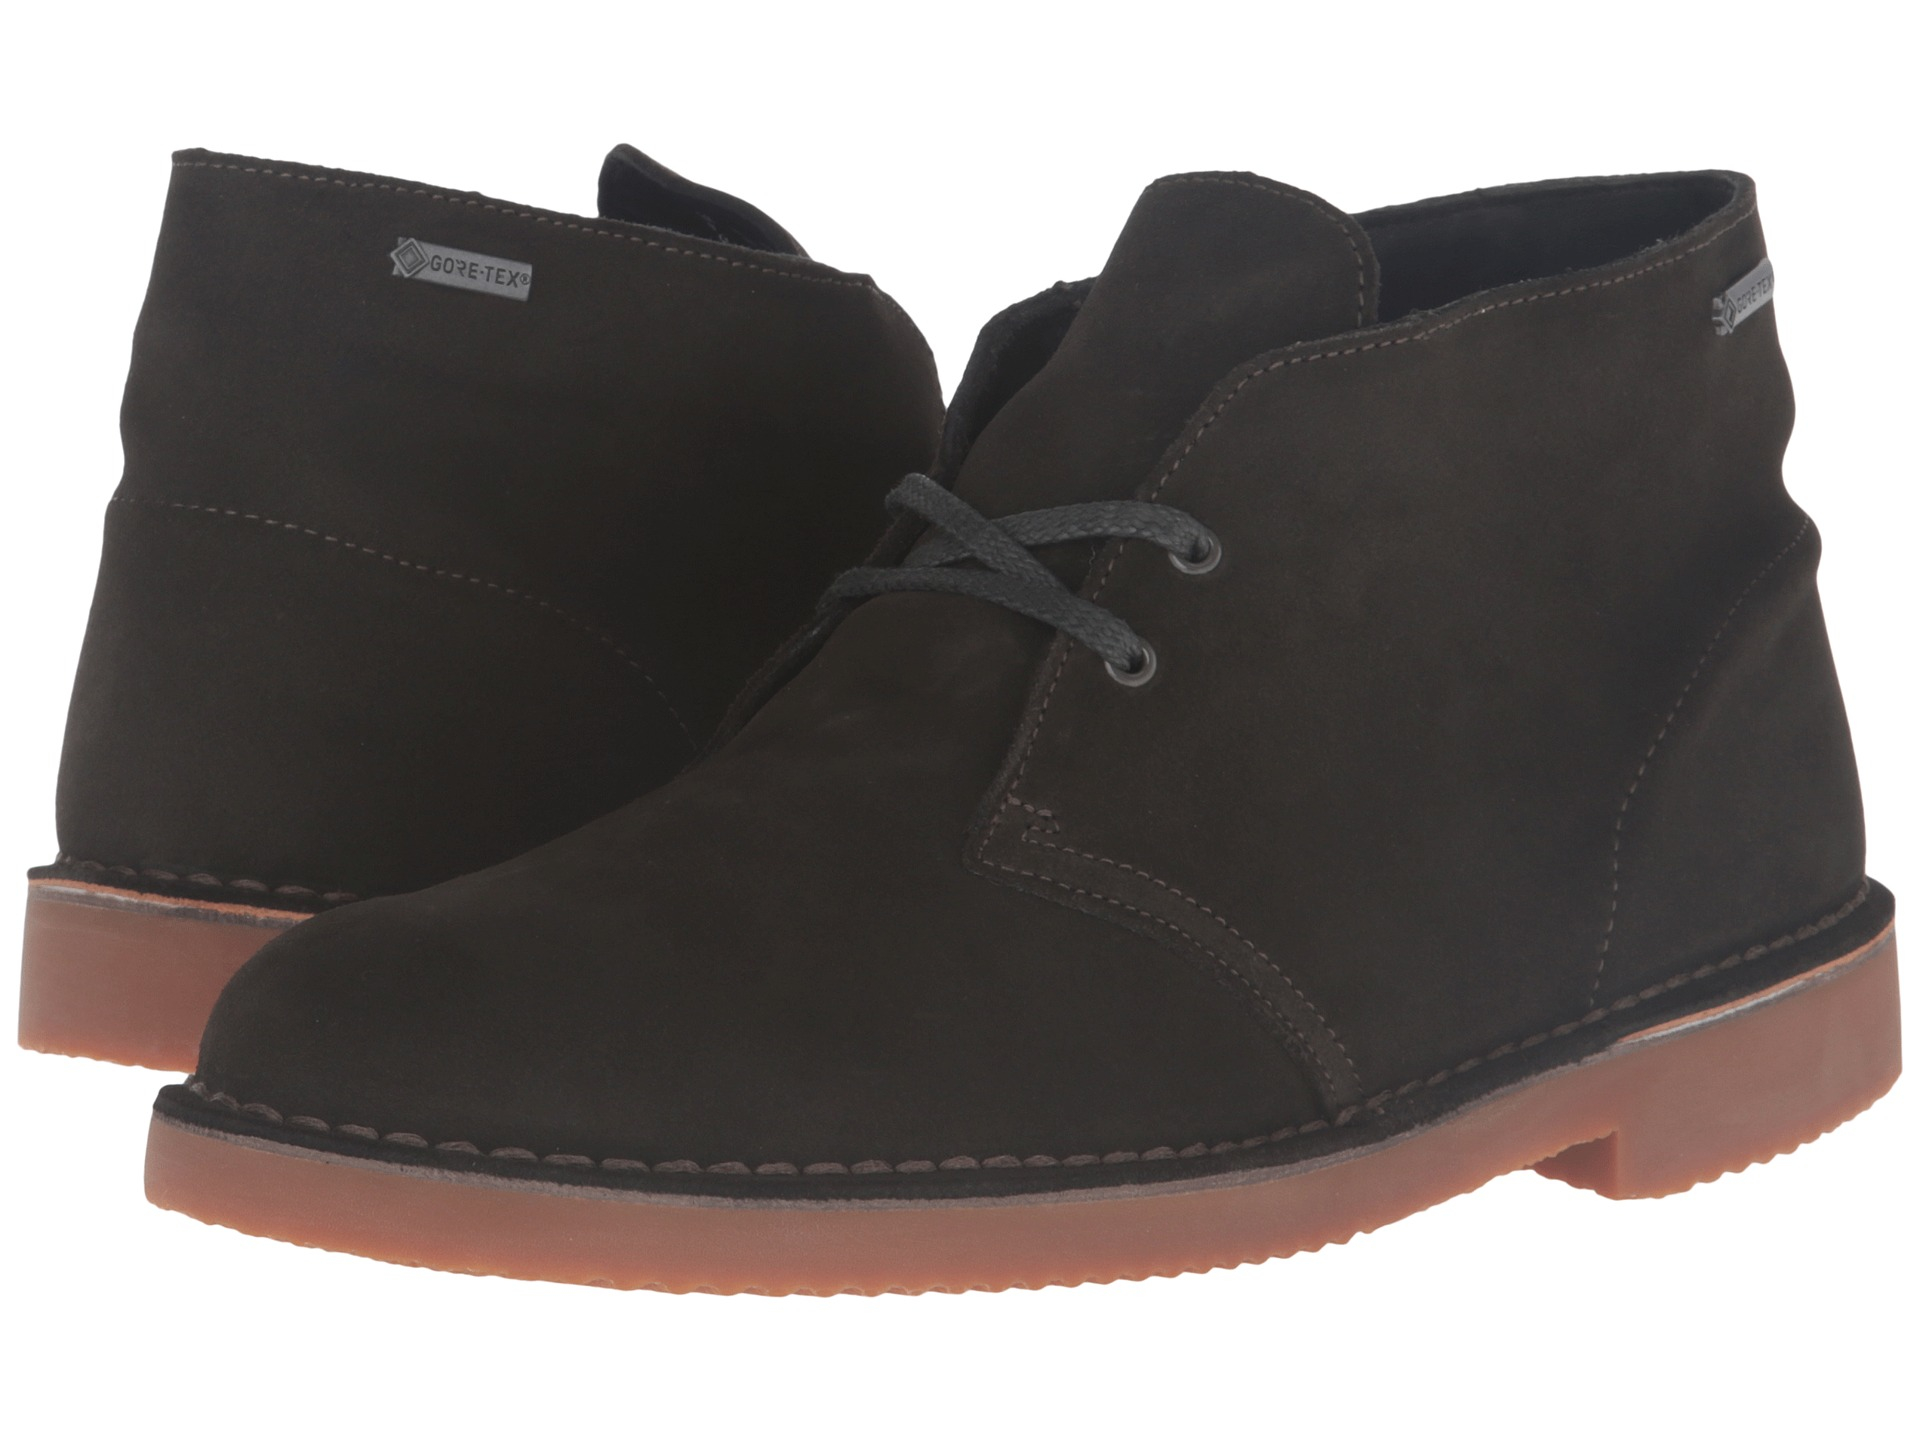 CLARK'S ORIGINALS DESERT BOOT III 217 BROWN SUEDE